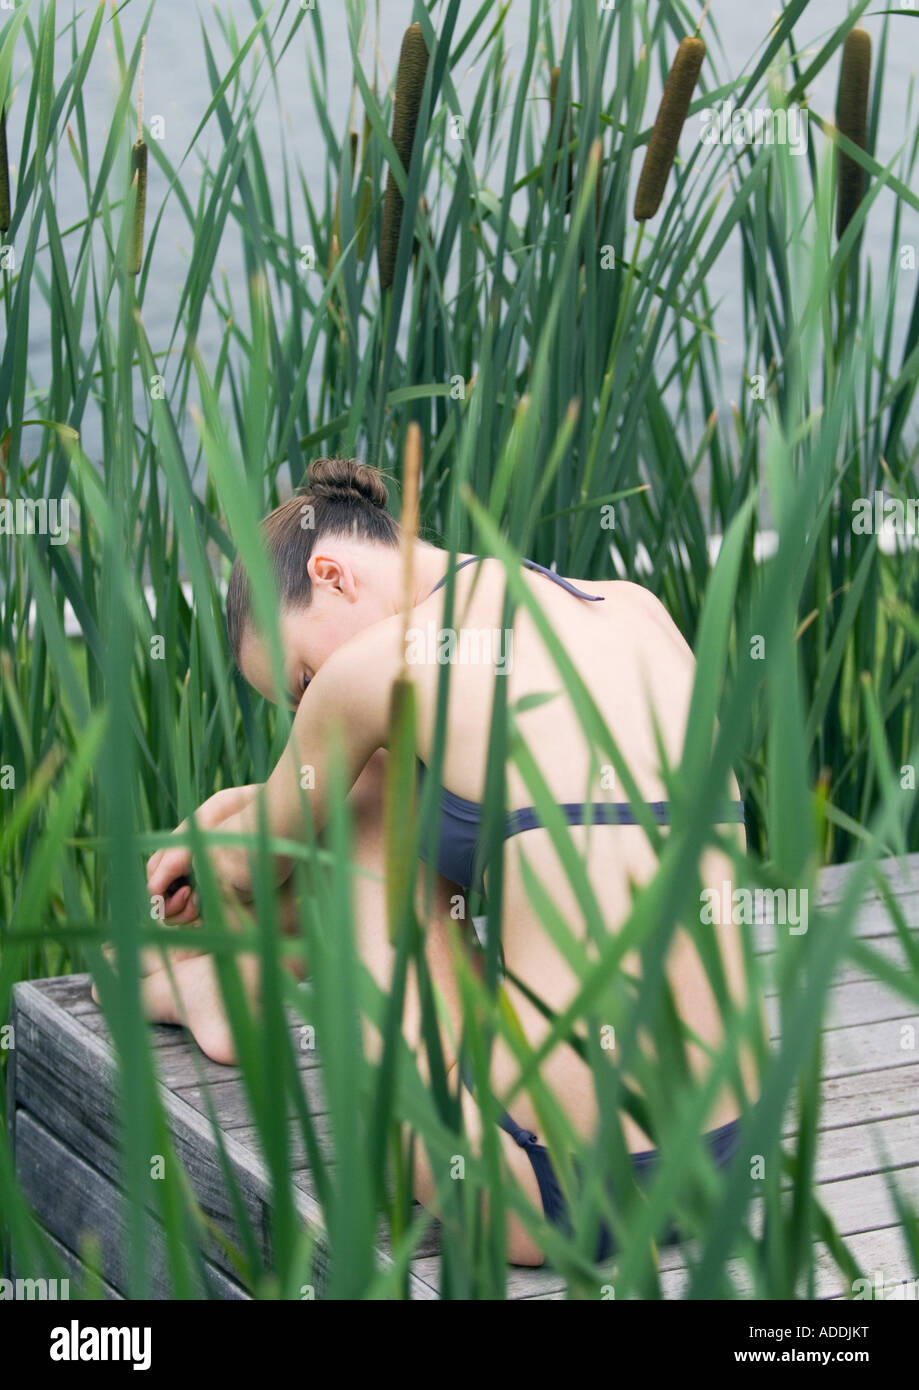 Young woman sitting on deck in bikini with head on knees, surrounded by reeds, rear view - Stock Image